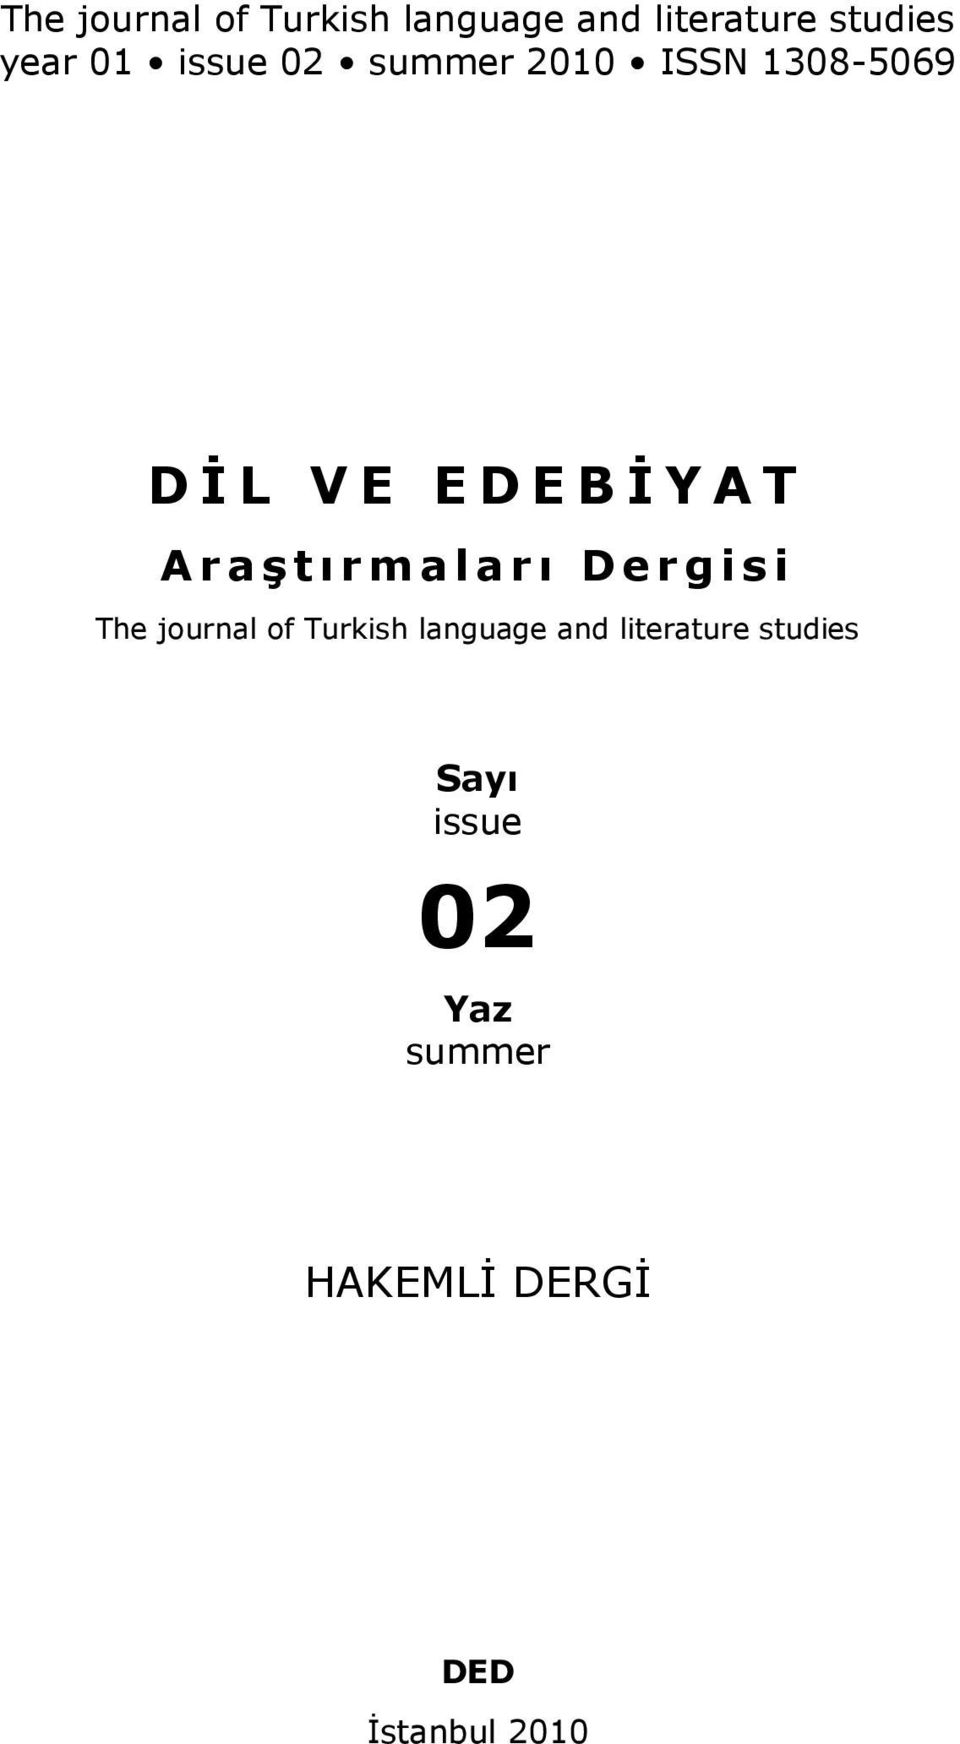 Araştırmaları Dergisi The journal of Turkish language and